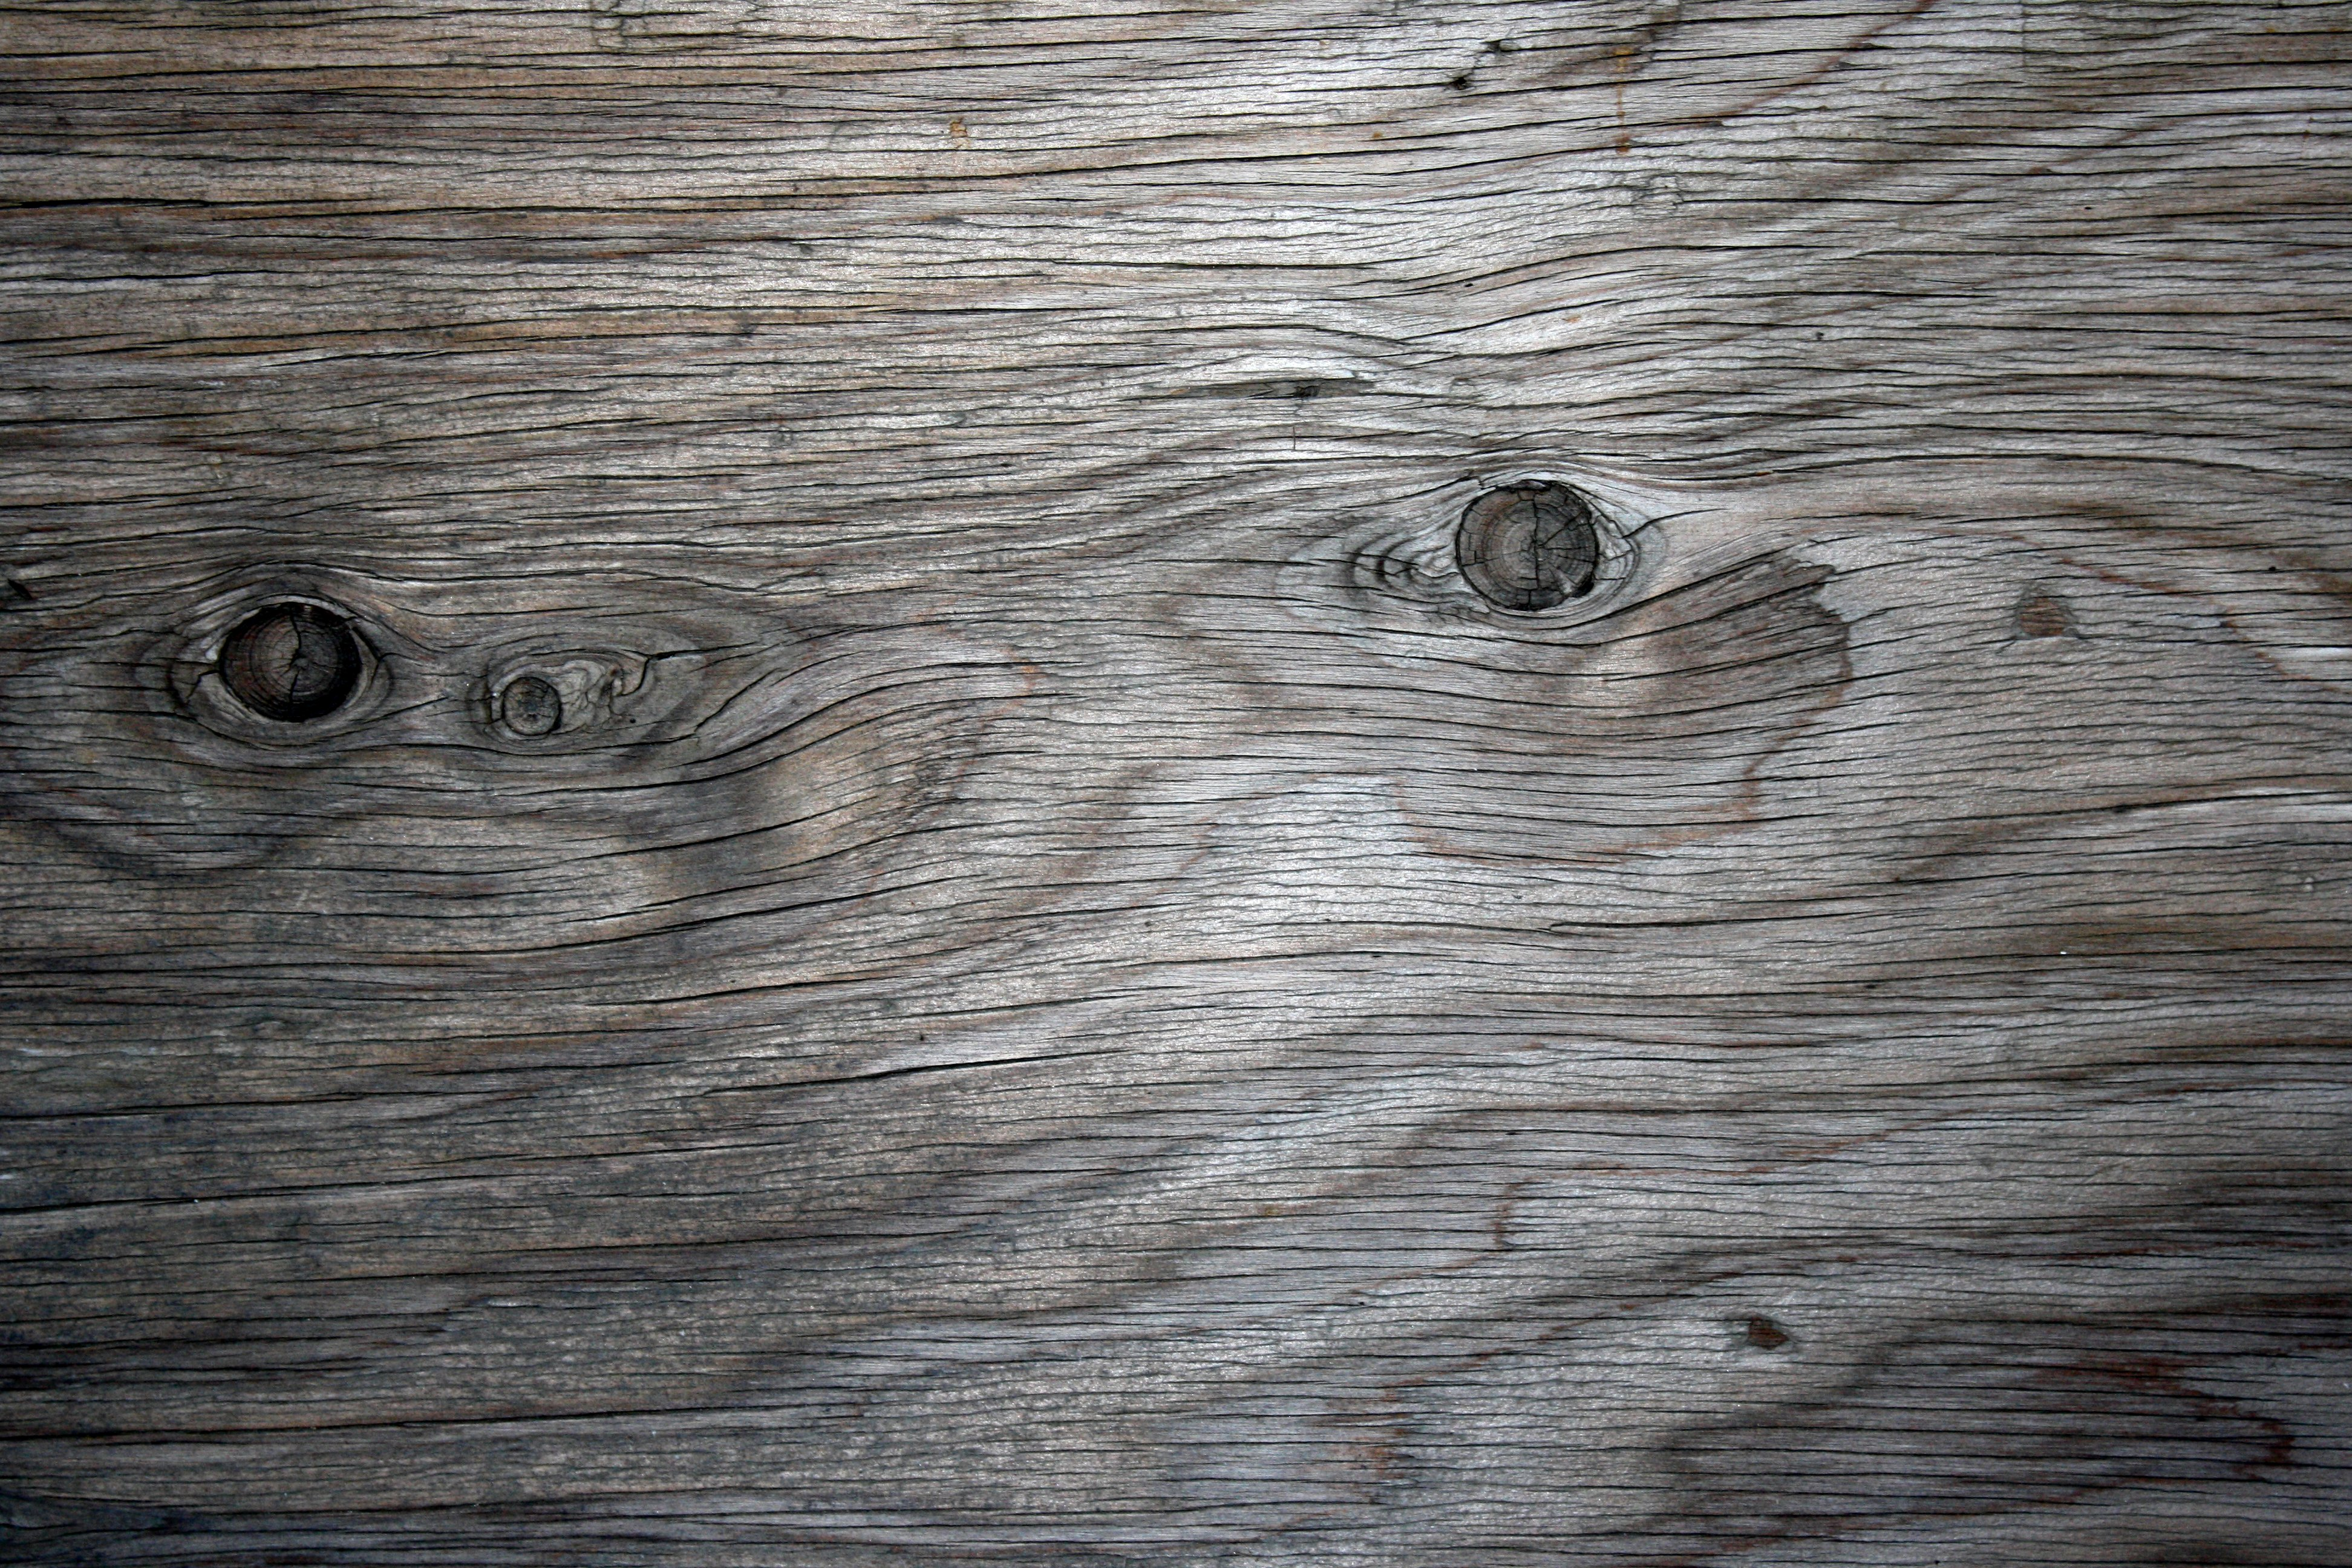 Weathered Wood Grain Texture Picture Photograph Photos Public 3888x2592